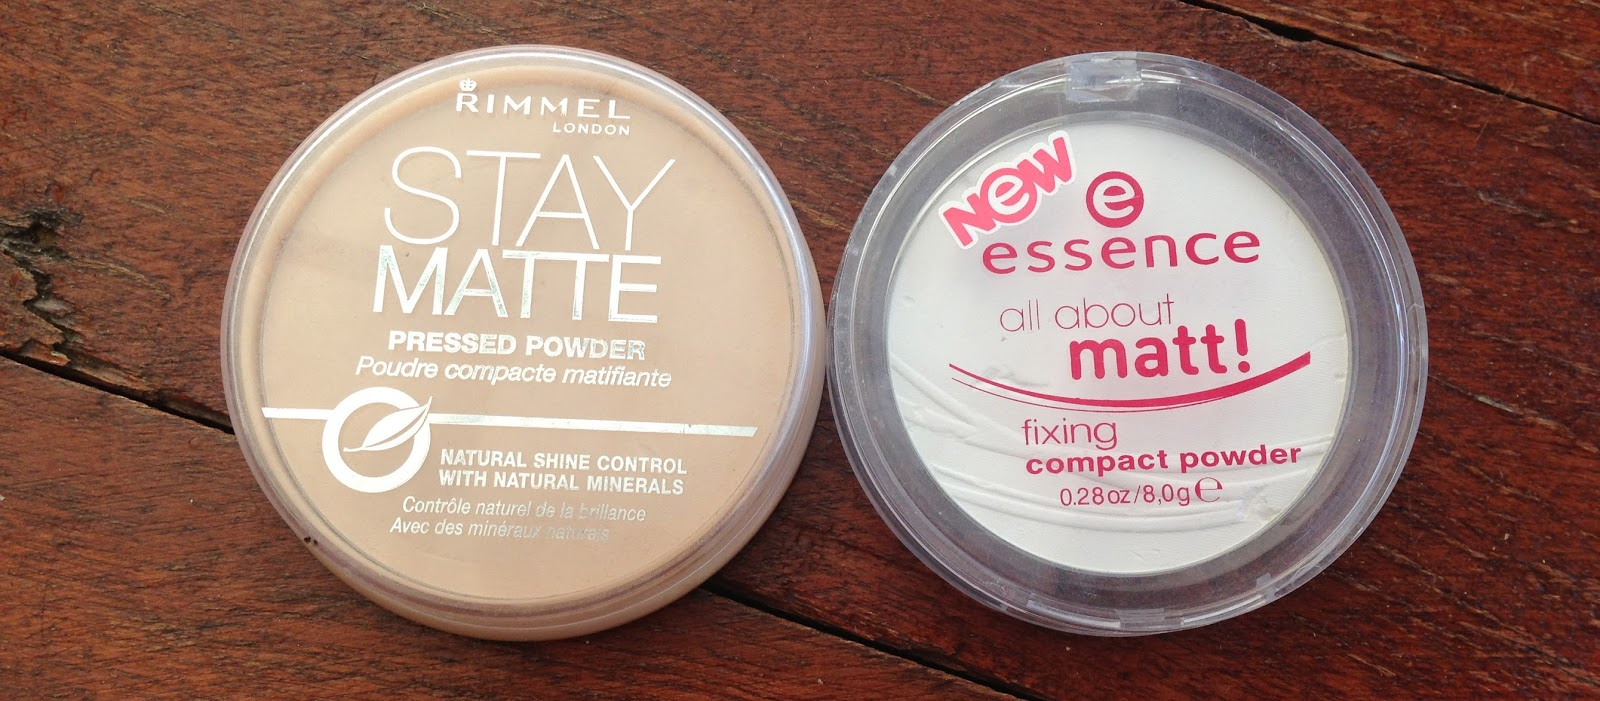 Born To Buy Compare The Pair Essence All About Matt And Rimmel London Stay Matte Pressed Powder Fixing Compact